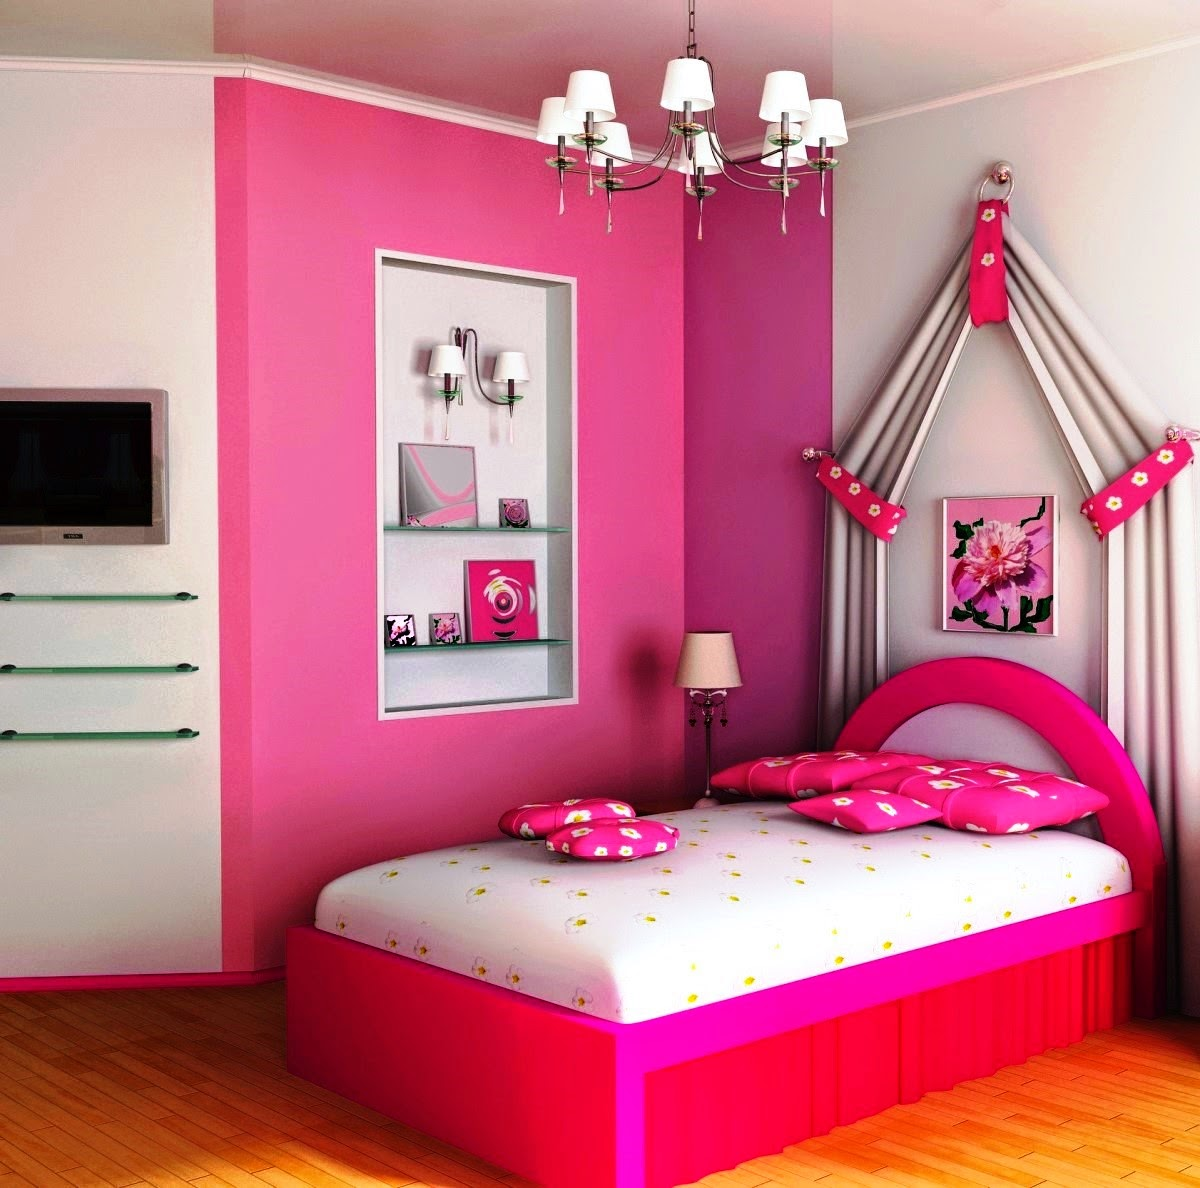 Girls Bedroom Cupboards Bedroom Color Ideas For Young Adults Elegant Bedroom Furniture Sets Cathedral Ceiling Bedroom: جديد ديكور وتصاميم غرف نوم بنات